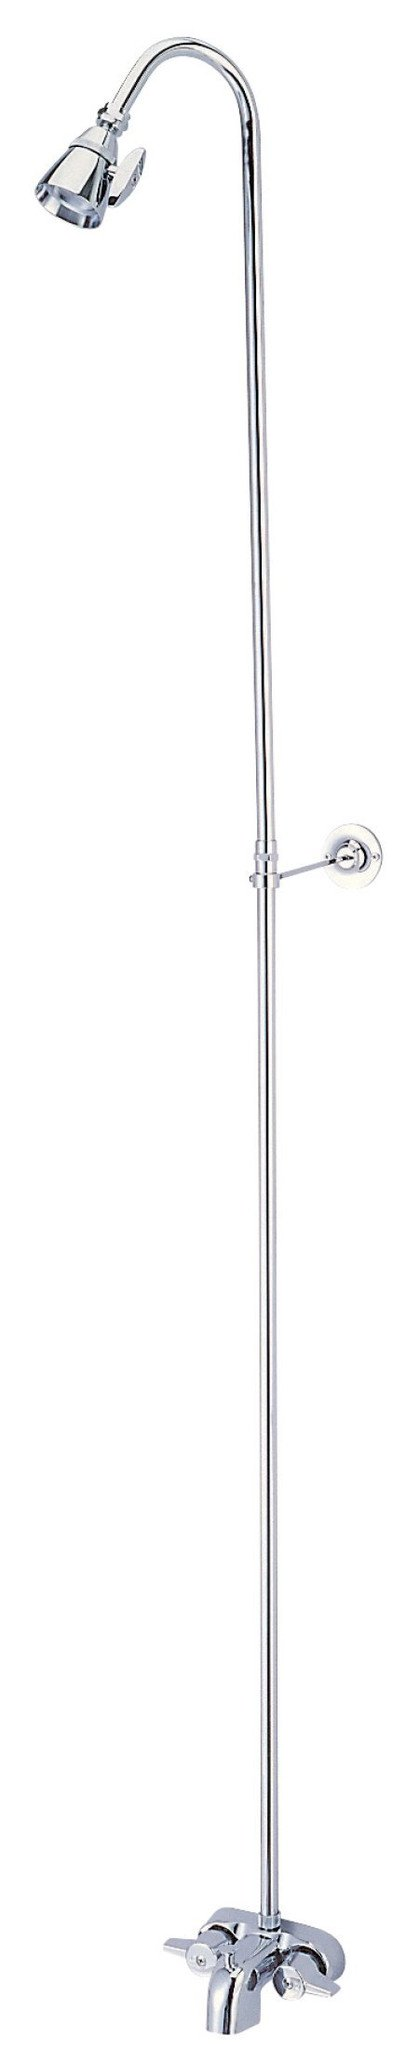 Kingston Brass Chrome Converto Shower CC3121